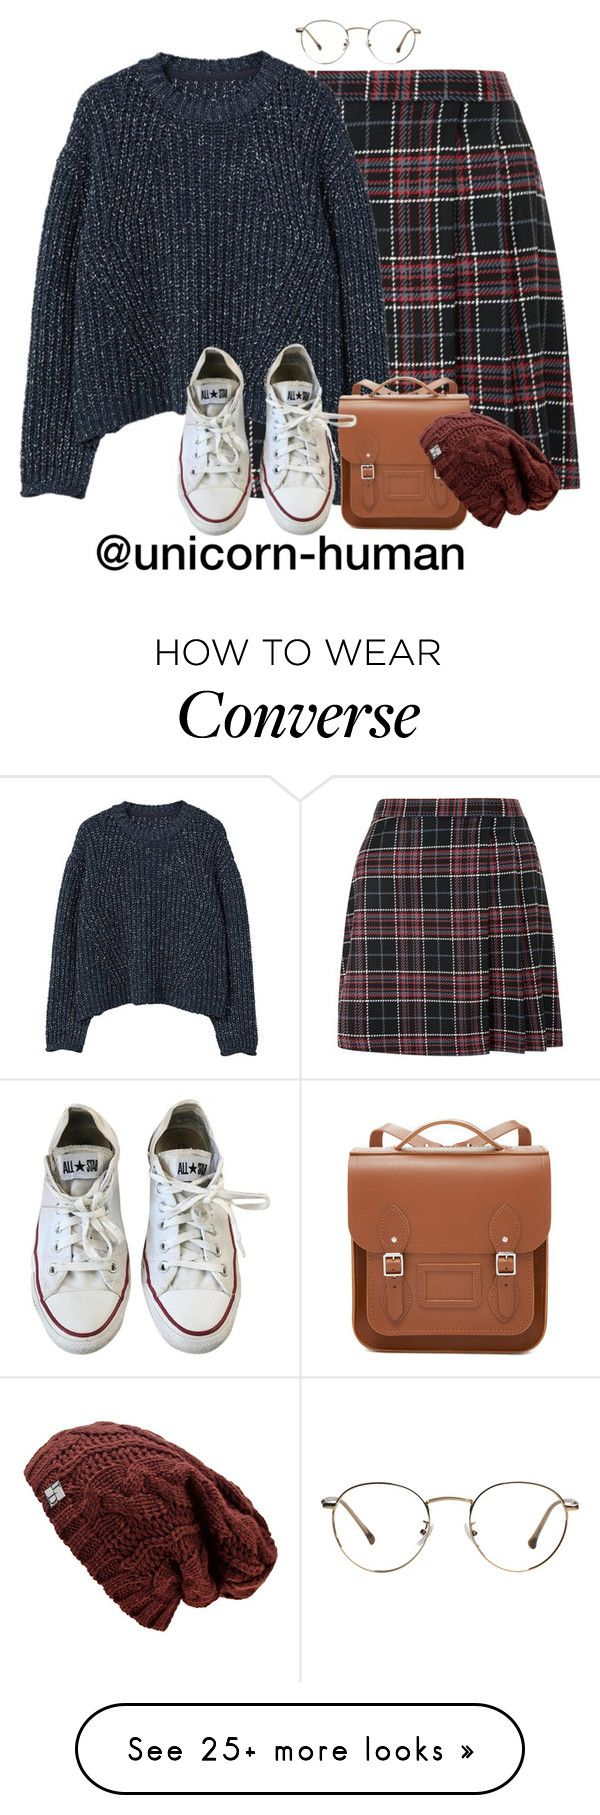 """""""Untitled #3114"""" by unicorn-human on Polyvore featuring MANGO, The Cambridge Satchel Company and Converse"""